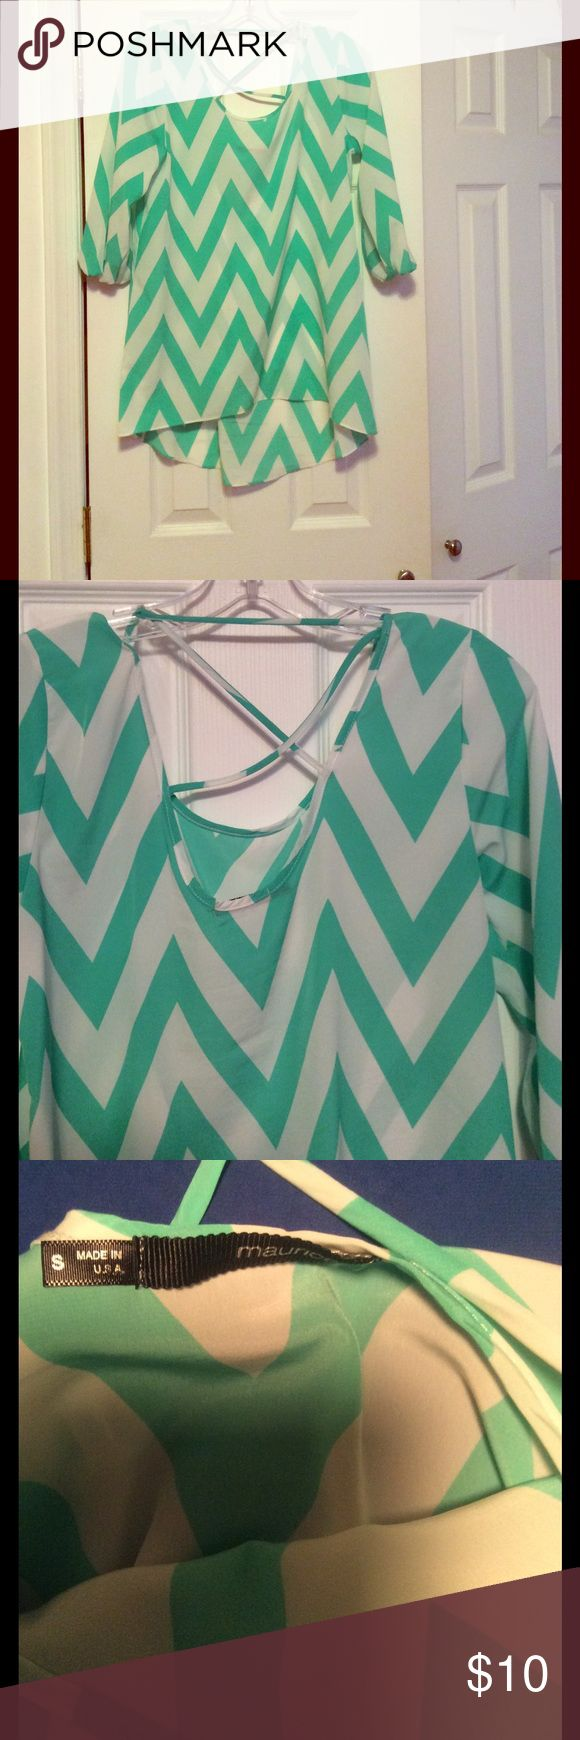 Super cute Chevron shirt!! White and mint green chevron. Polyester material. Runs big for a small. Back is slightly longer. Maurices Tops Blouses